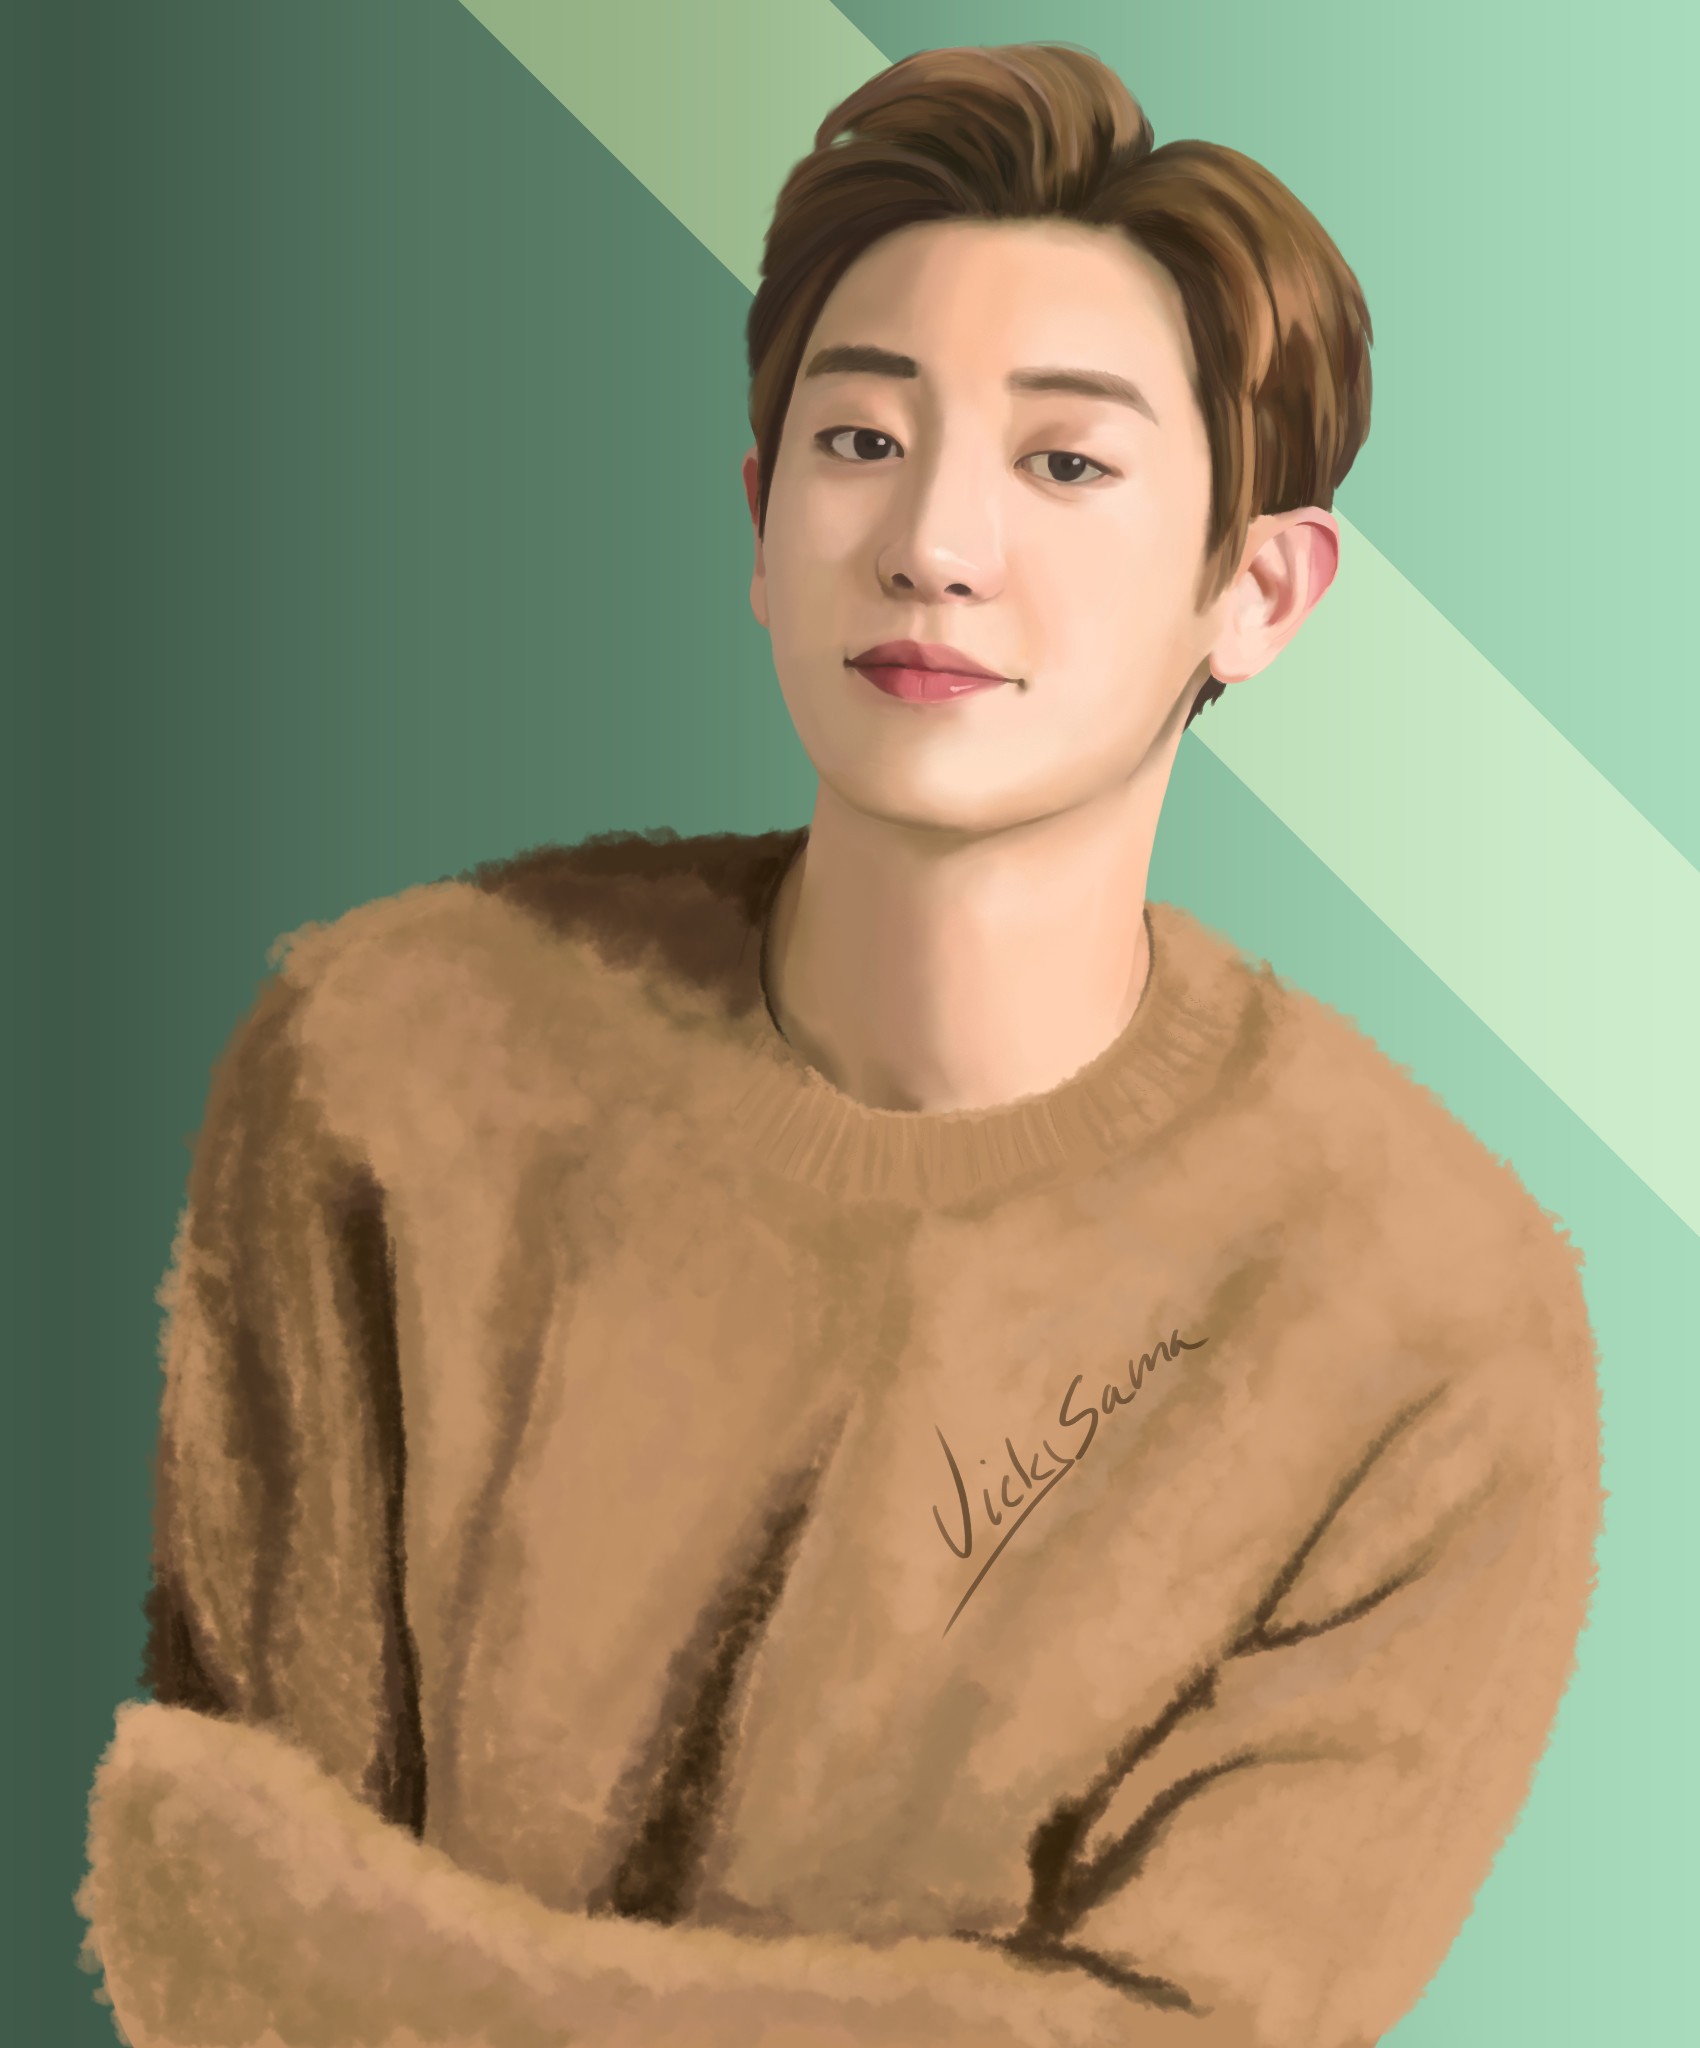 Artstation Exo Chanyeol Vicky Sama